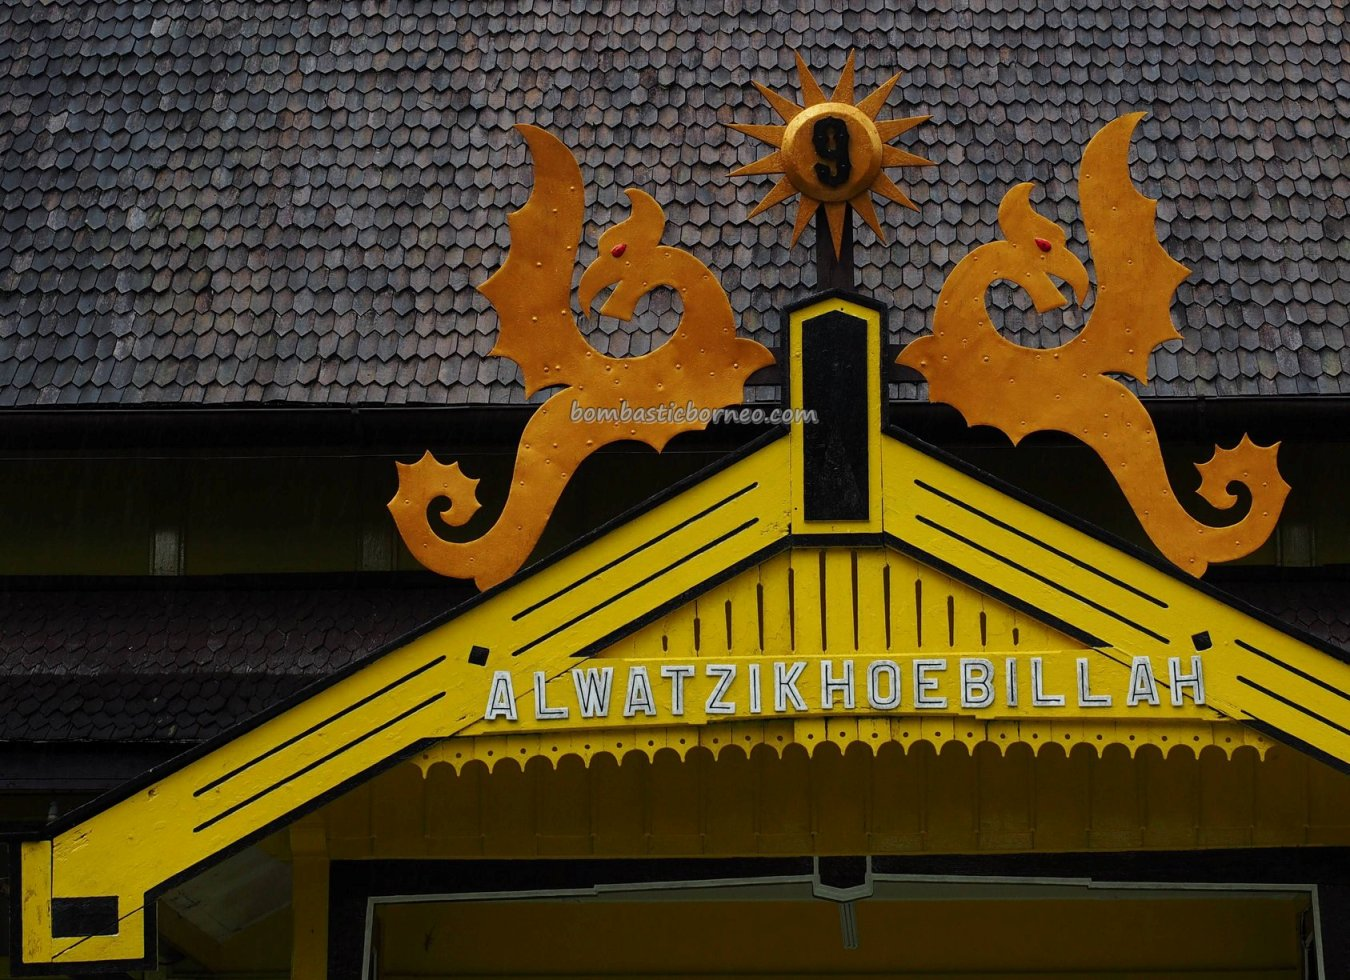 Istana Kerajaan, Keraton, Malay Sultanate, history, ancient, traditional, destination, Dayak Melayik, town, Indonesia, museum, Obyek wisata, travel guide, 婆罗洲旅游景点, 印尼西加里曼丹,